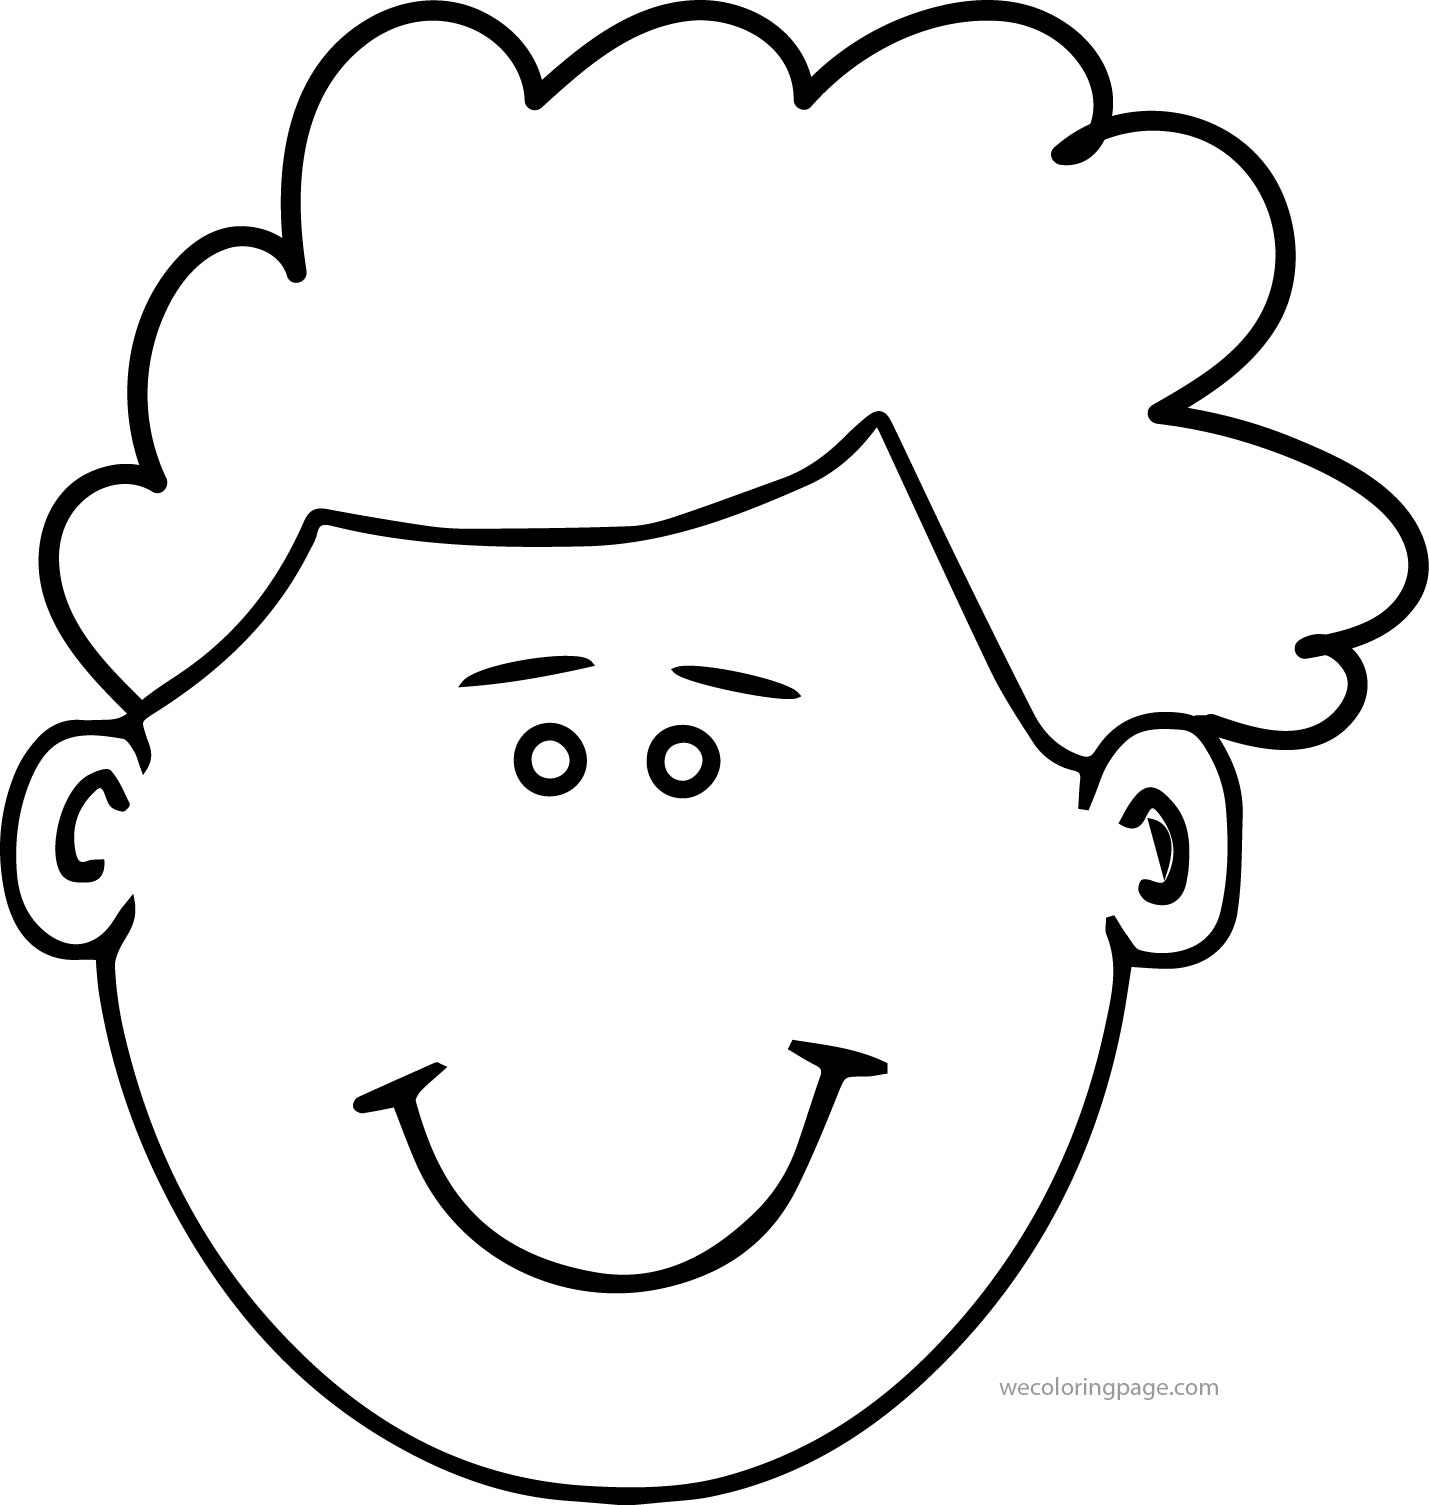 coloring pages childrens face - photo#22